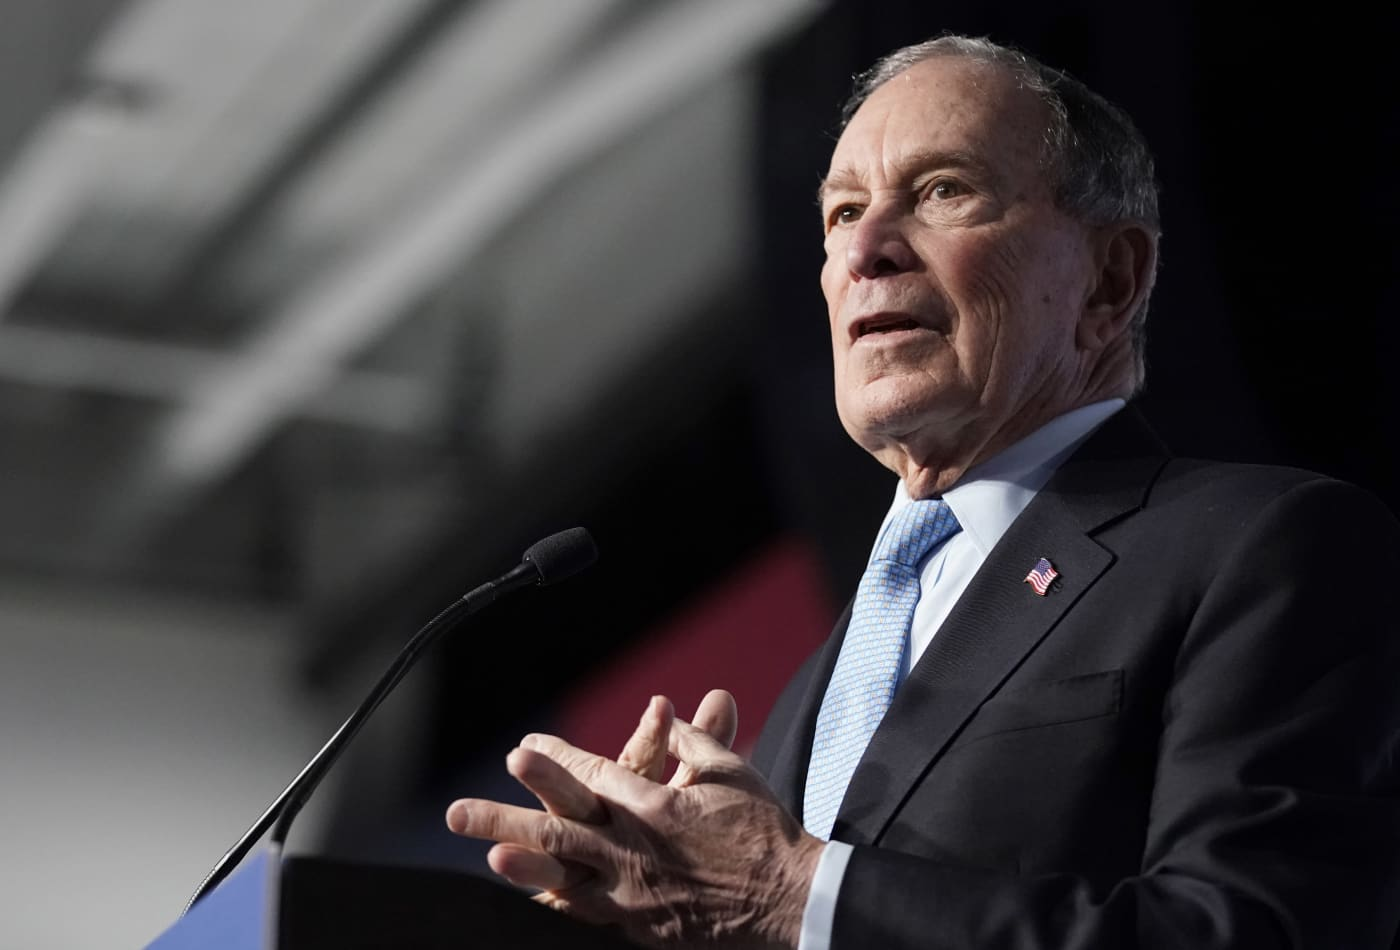 Mike Bloomberg's momentum stalls in presidential polls ahead of Super Tuesday vote